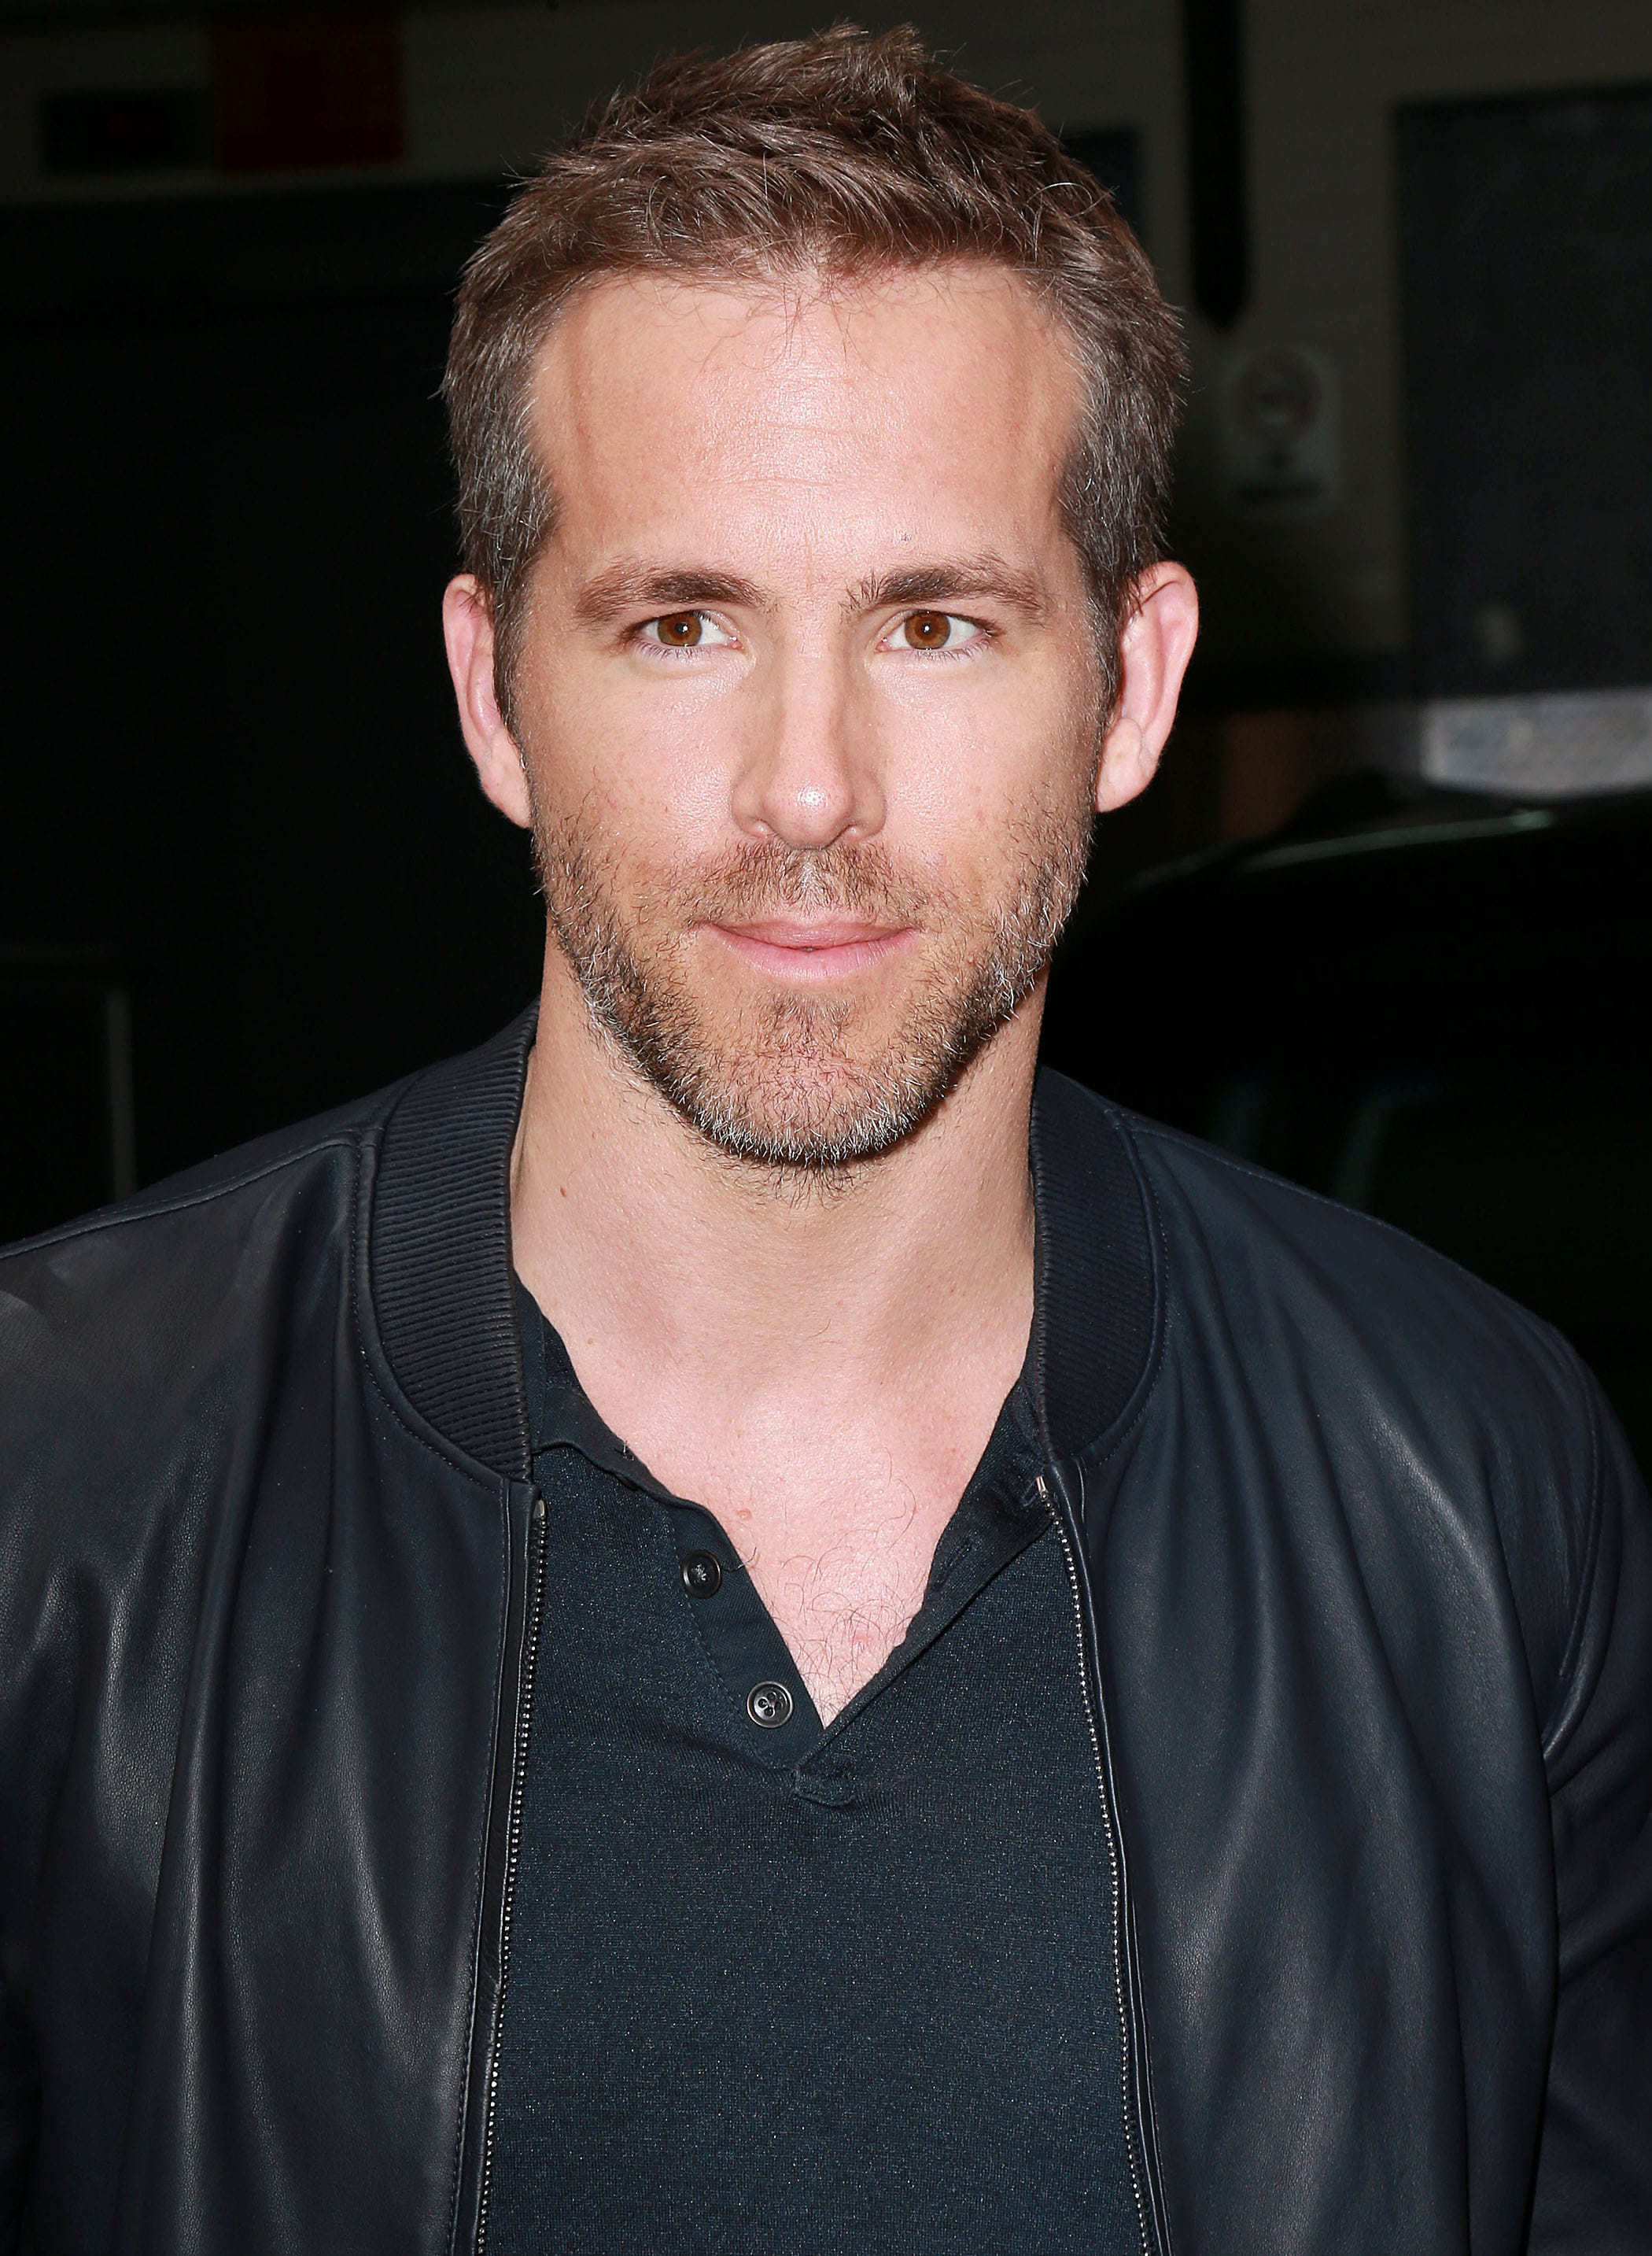 Ivy League haircut: Ryan Reynolds with brown hair in an Ivy League Haircut, wearing a black top and jacket